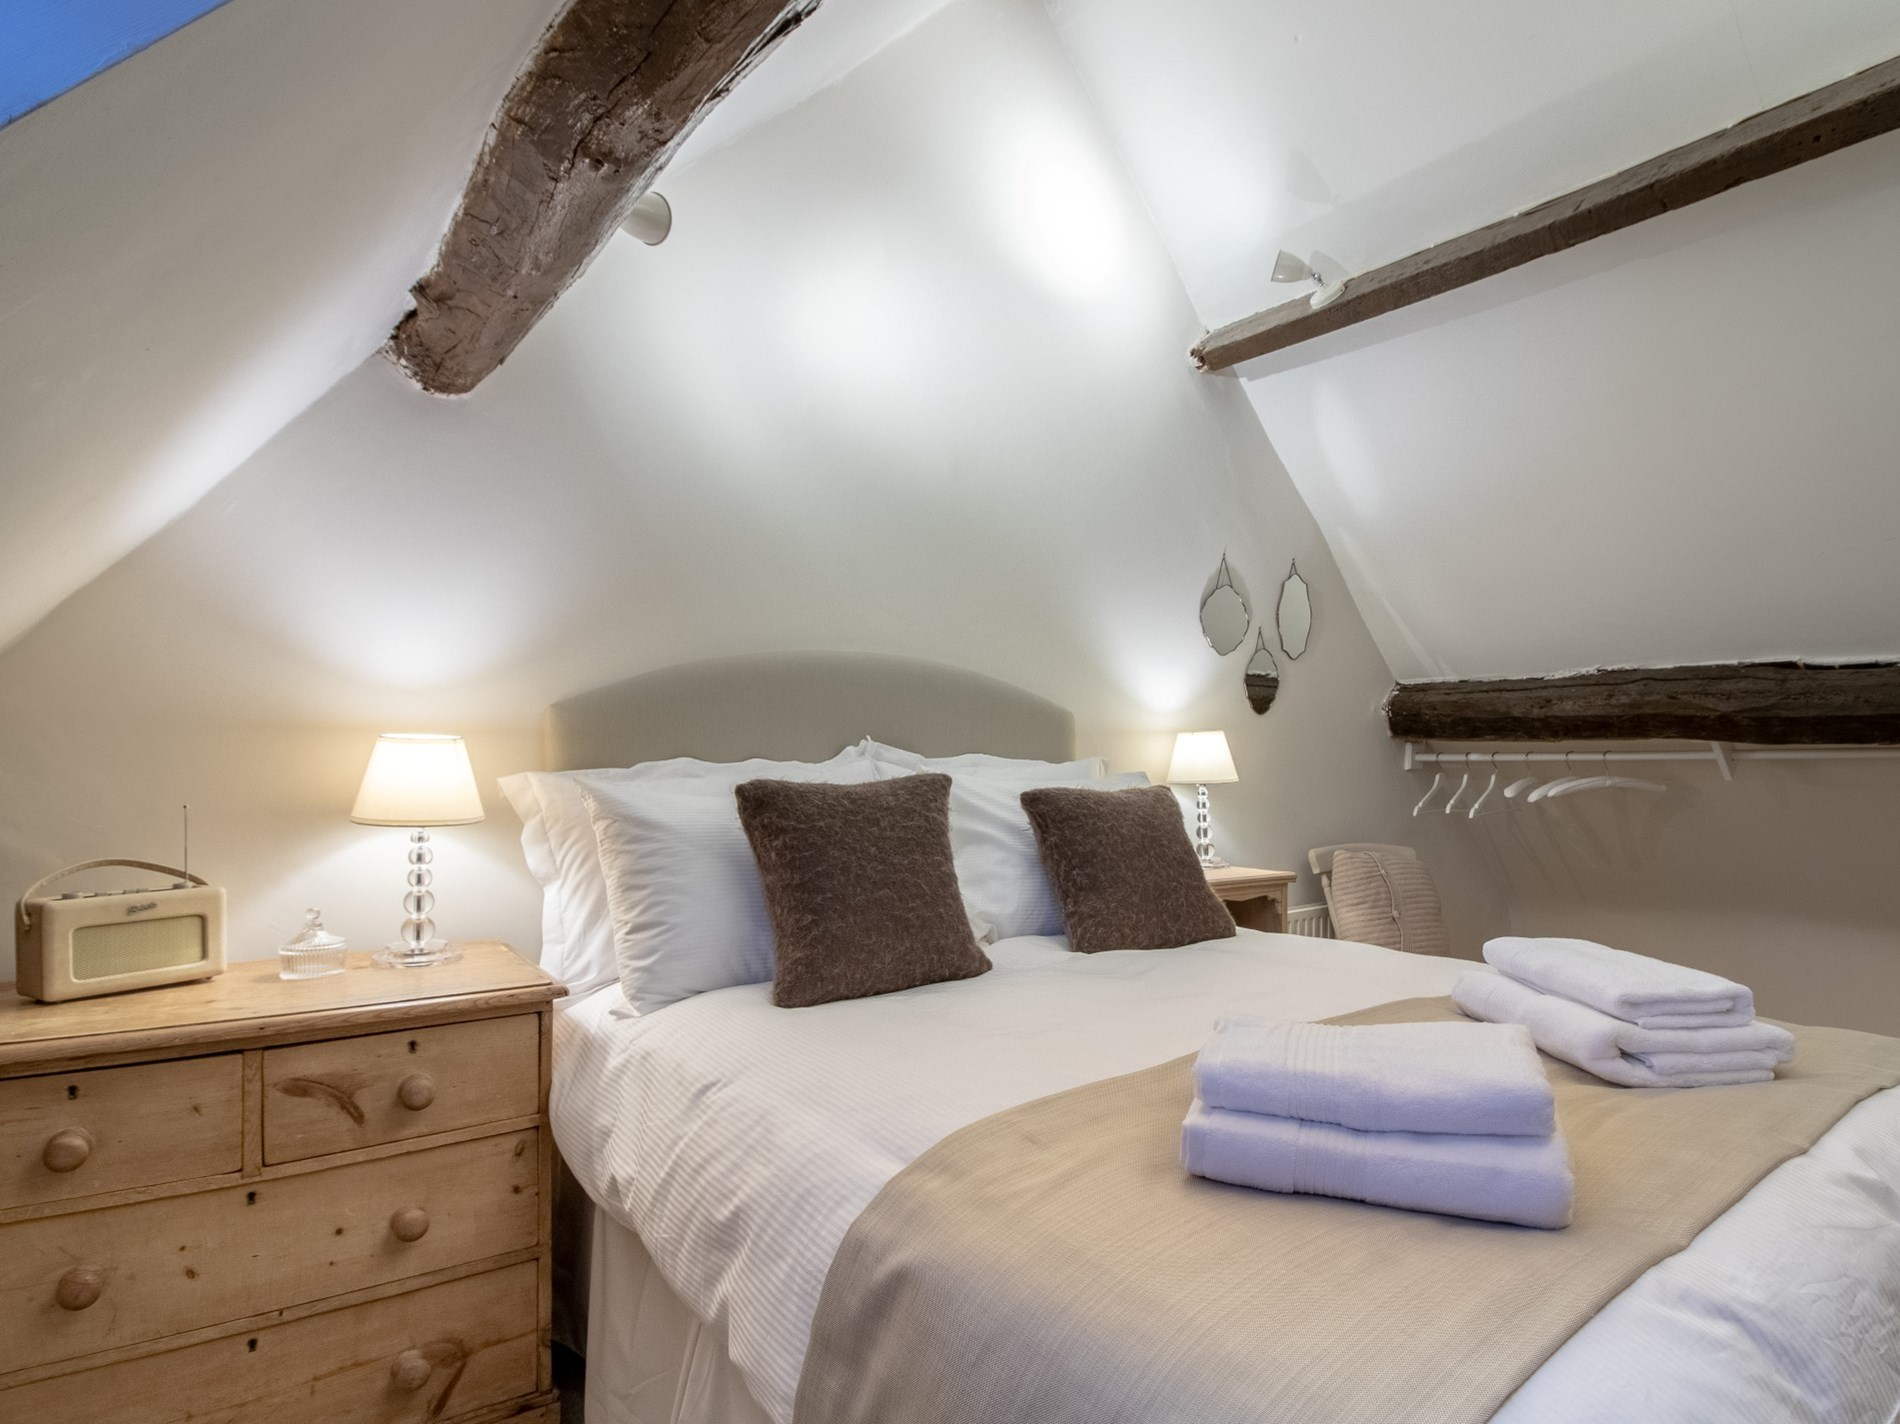 Double bedroom set within the eaves